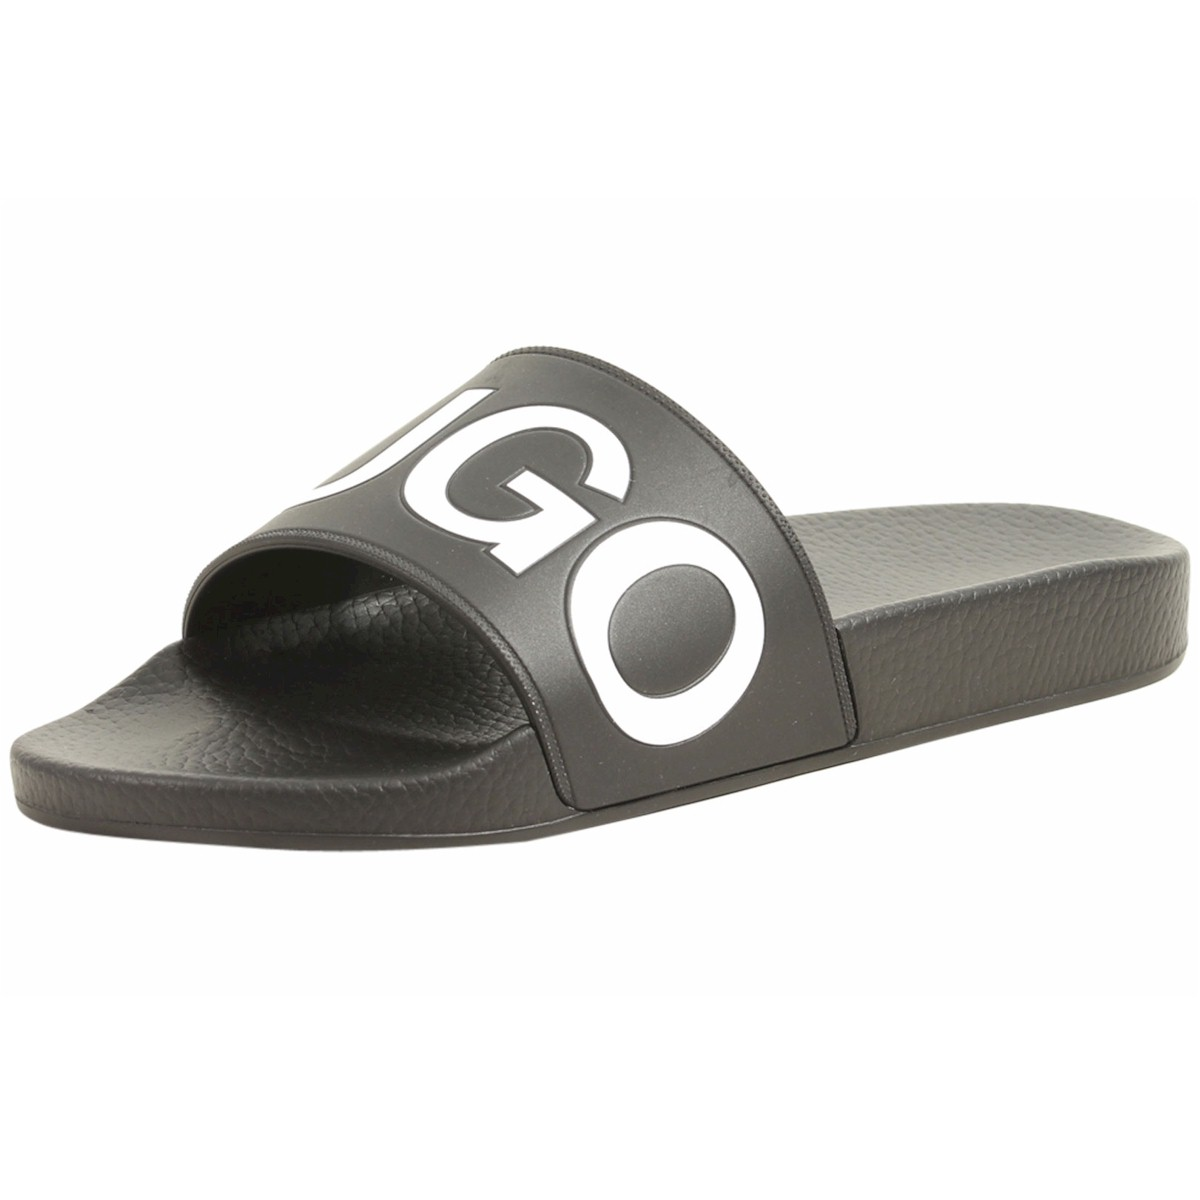 ab3b63a8996e Hugo Boss Men s Timeout-RB Slides Sandals Shoes